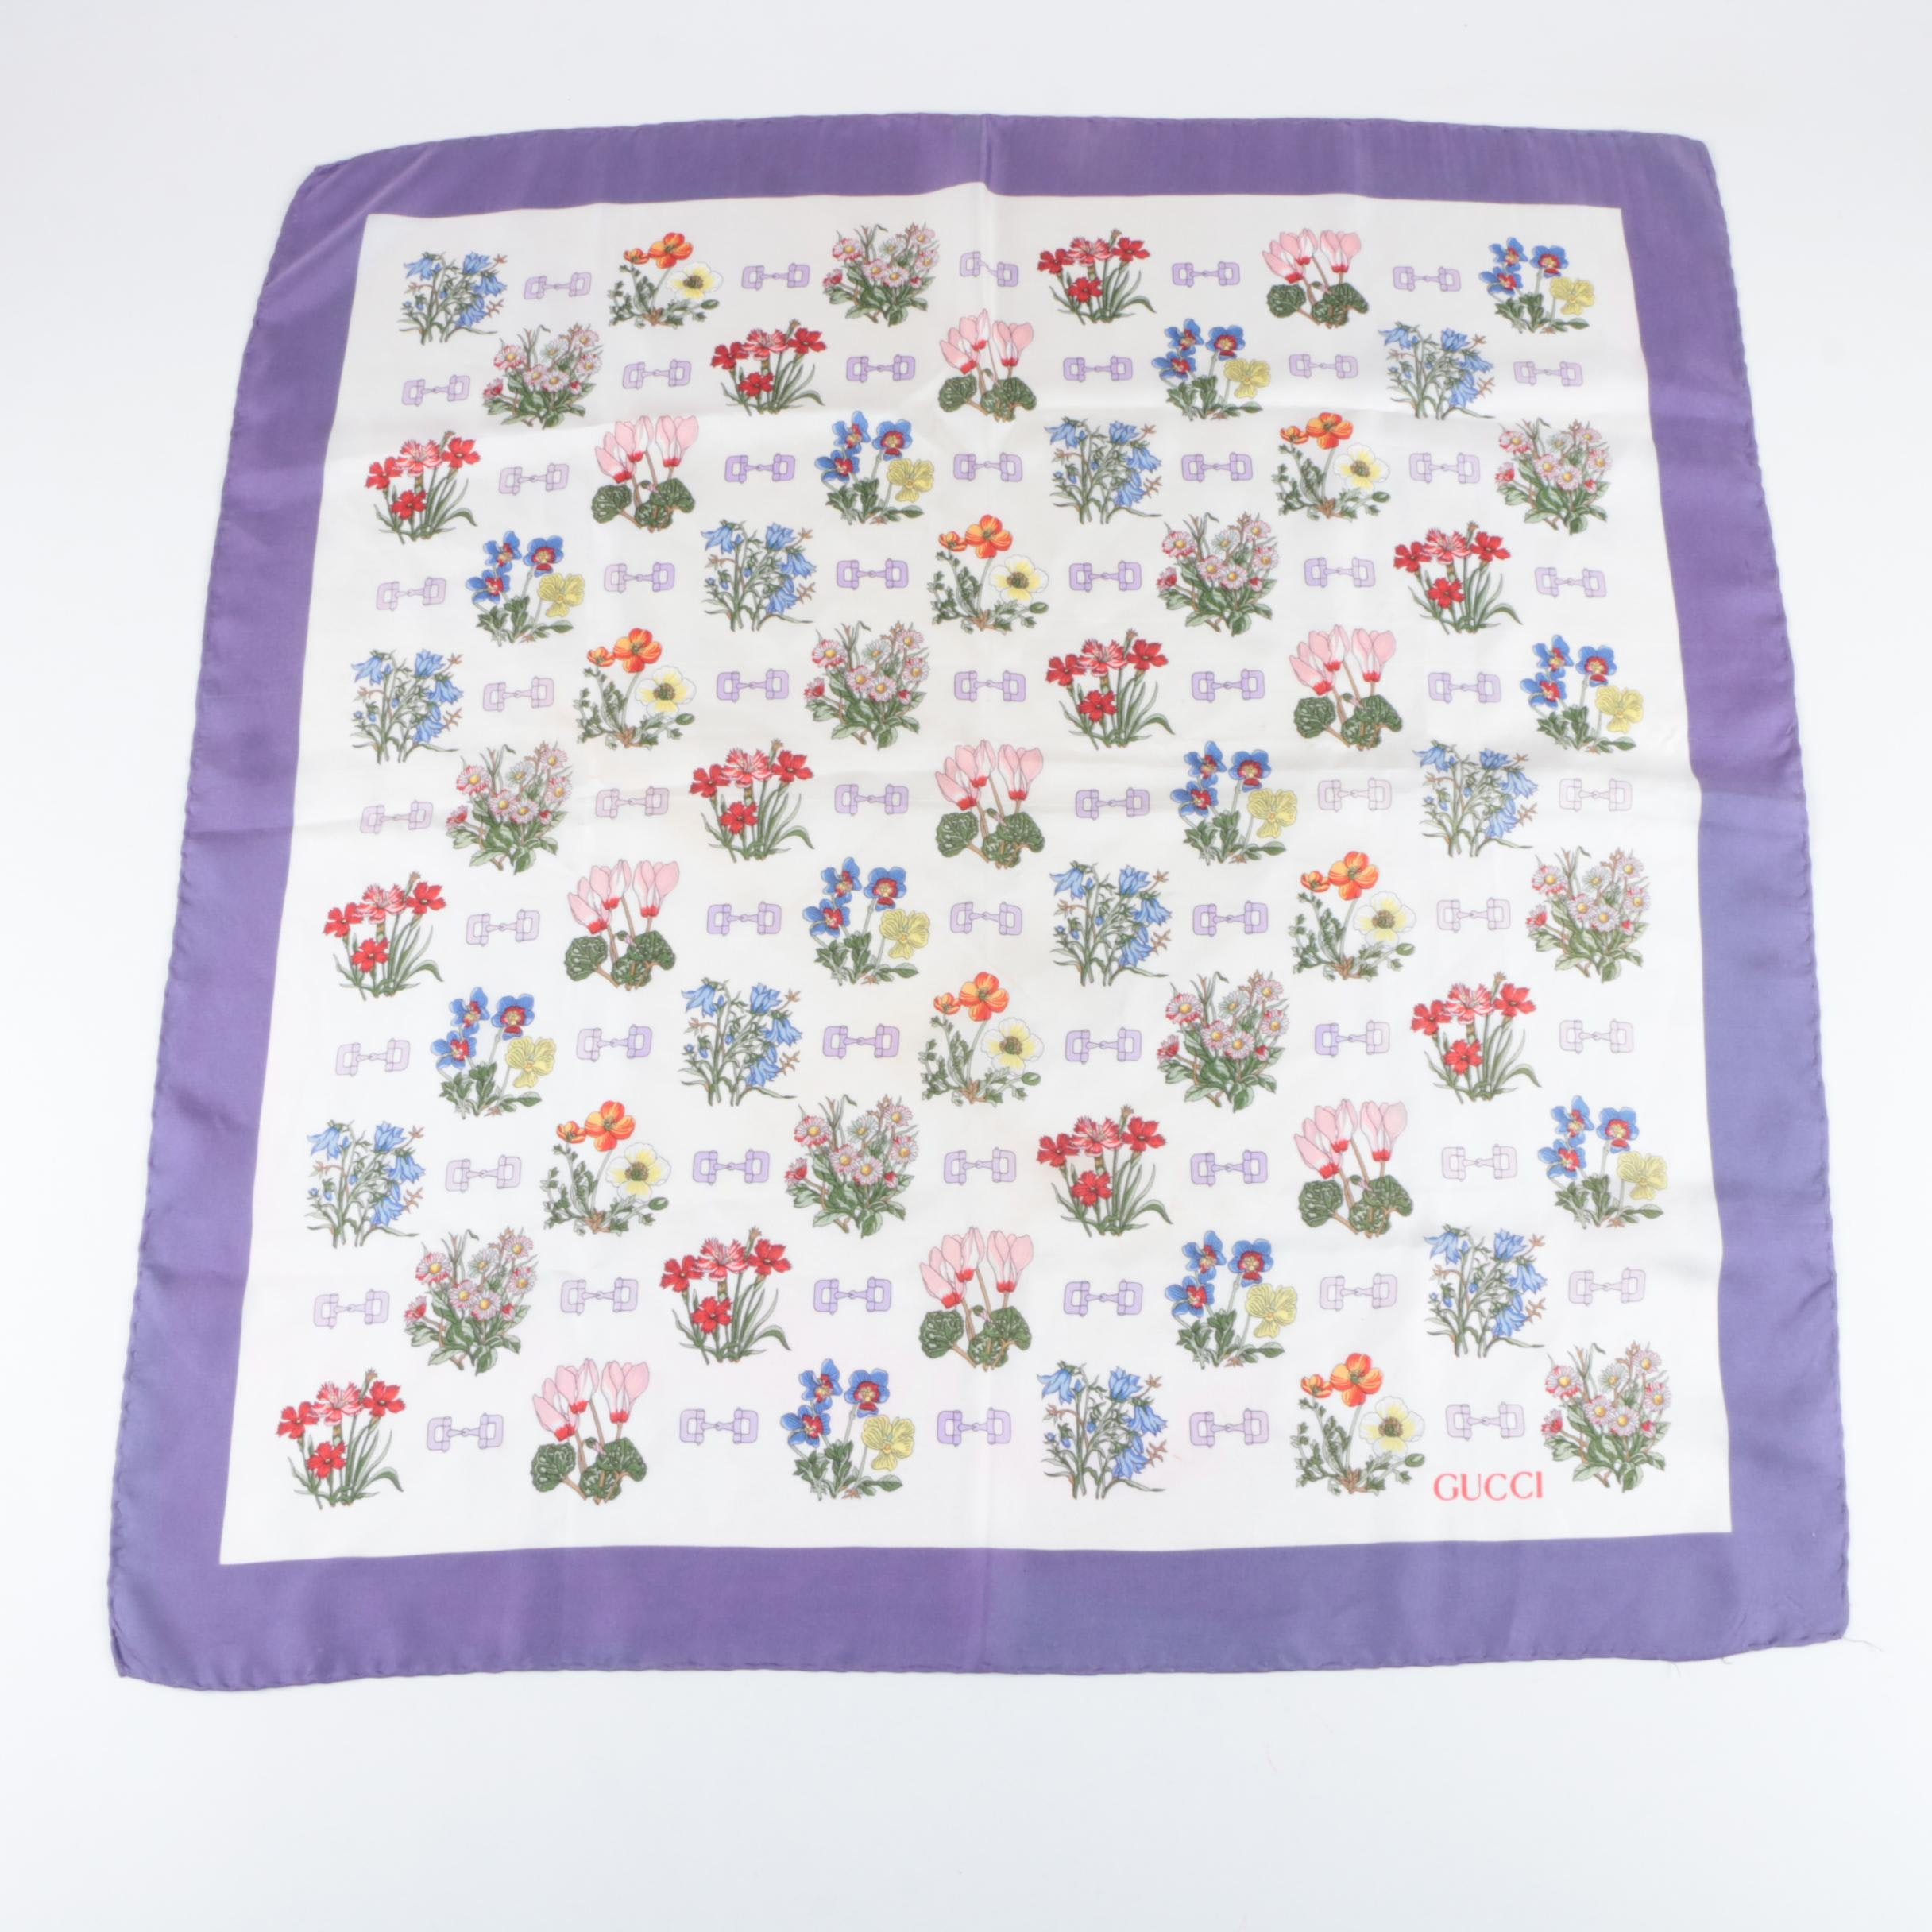 Gucci Silk Scarf with Floral Bouqets